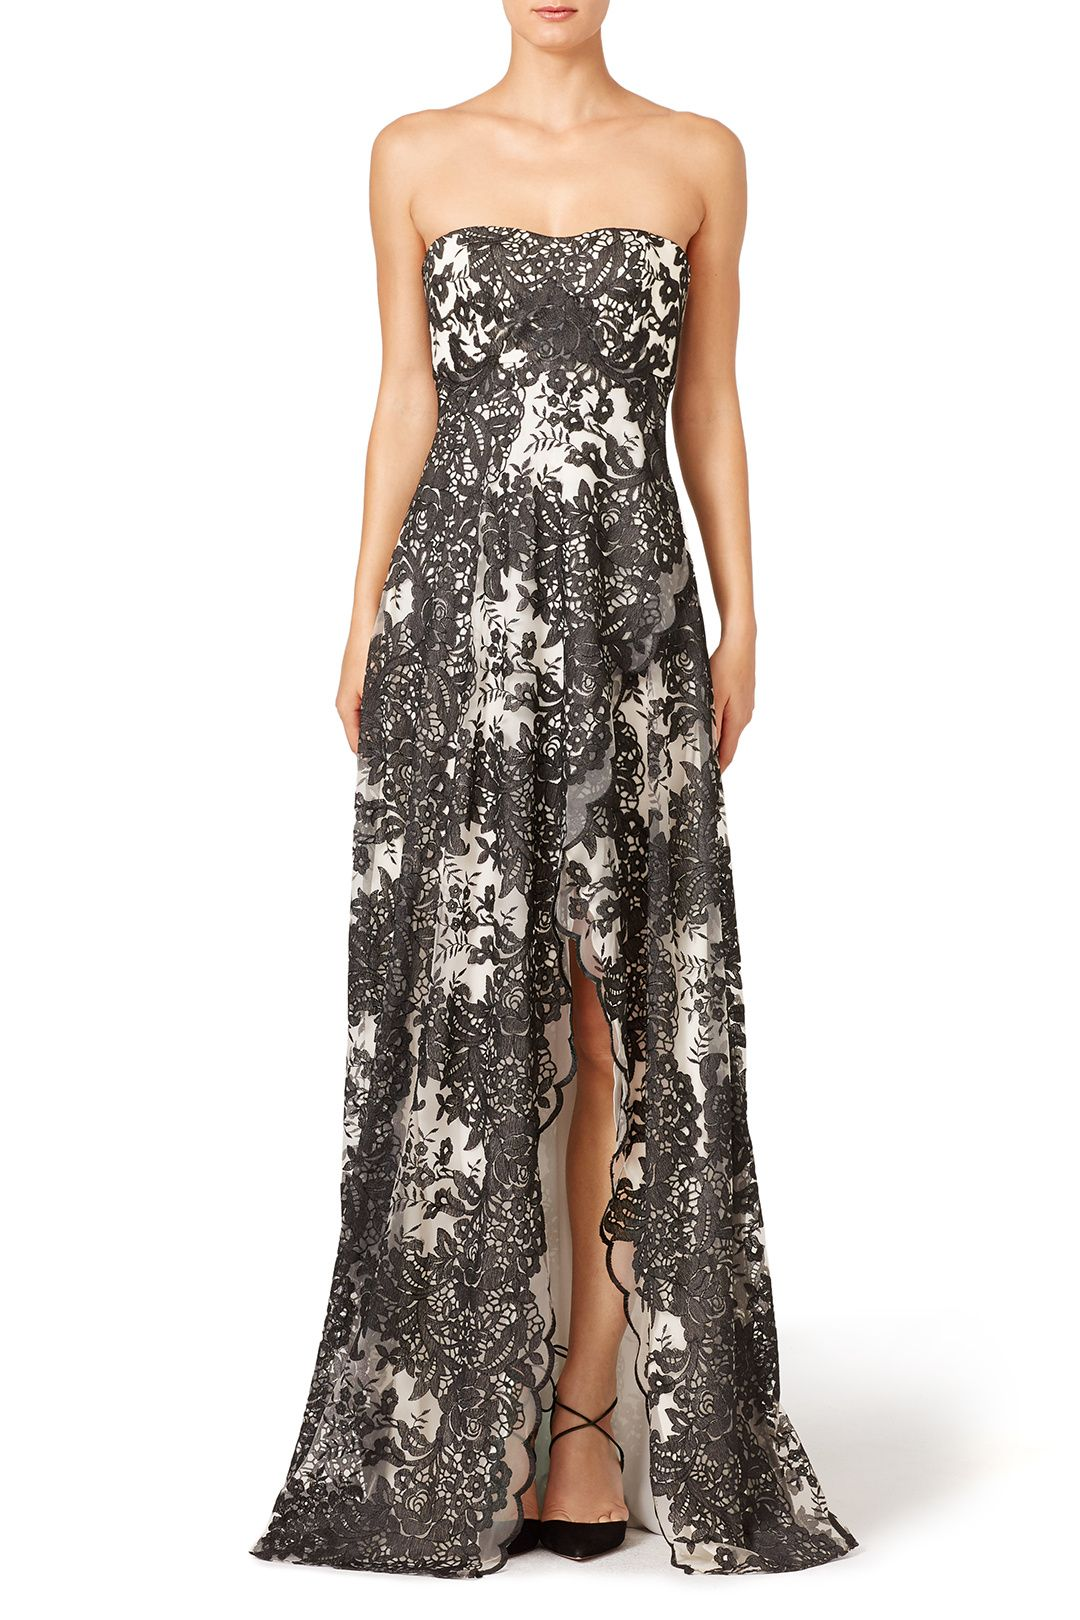 Smoked Ivy Dress by Marchesa Notte ($1095 retail or rent for $175) | Rent The Runway